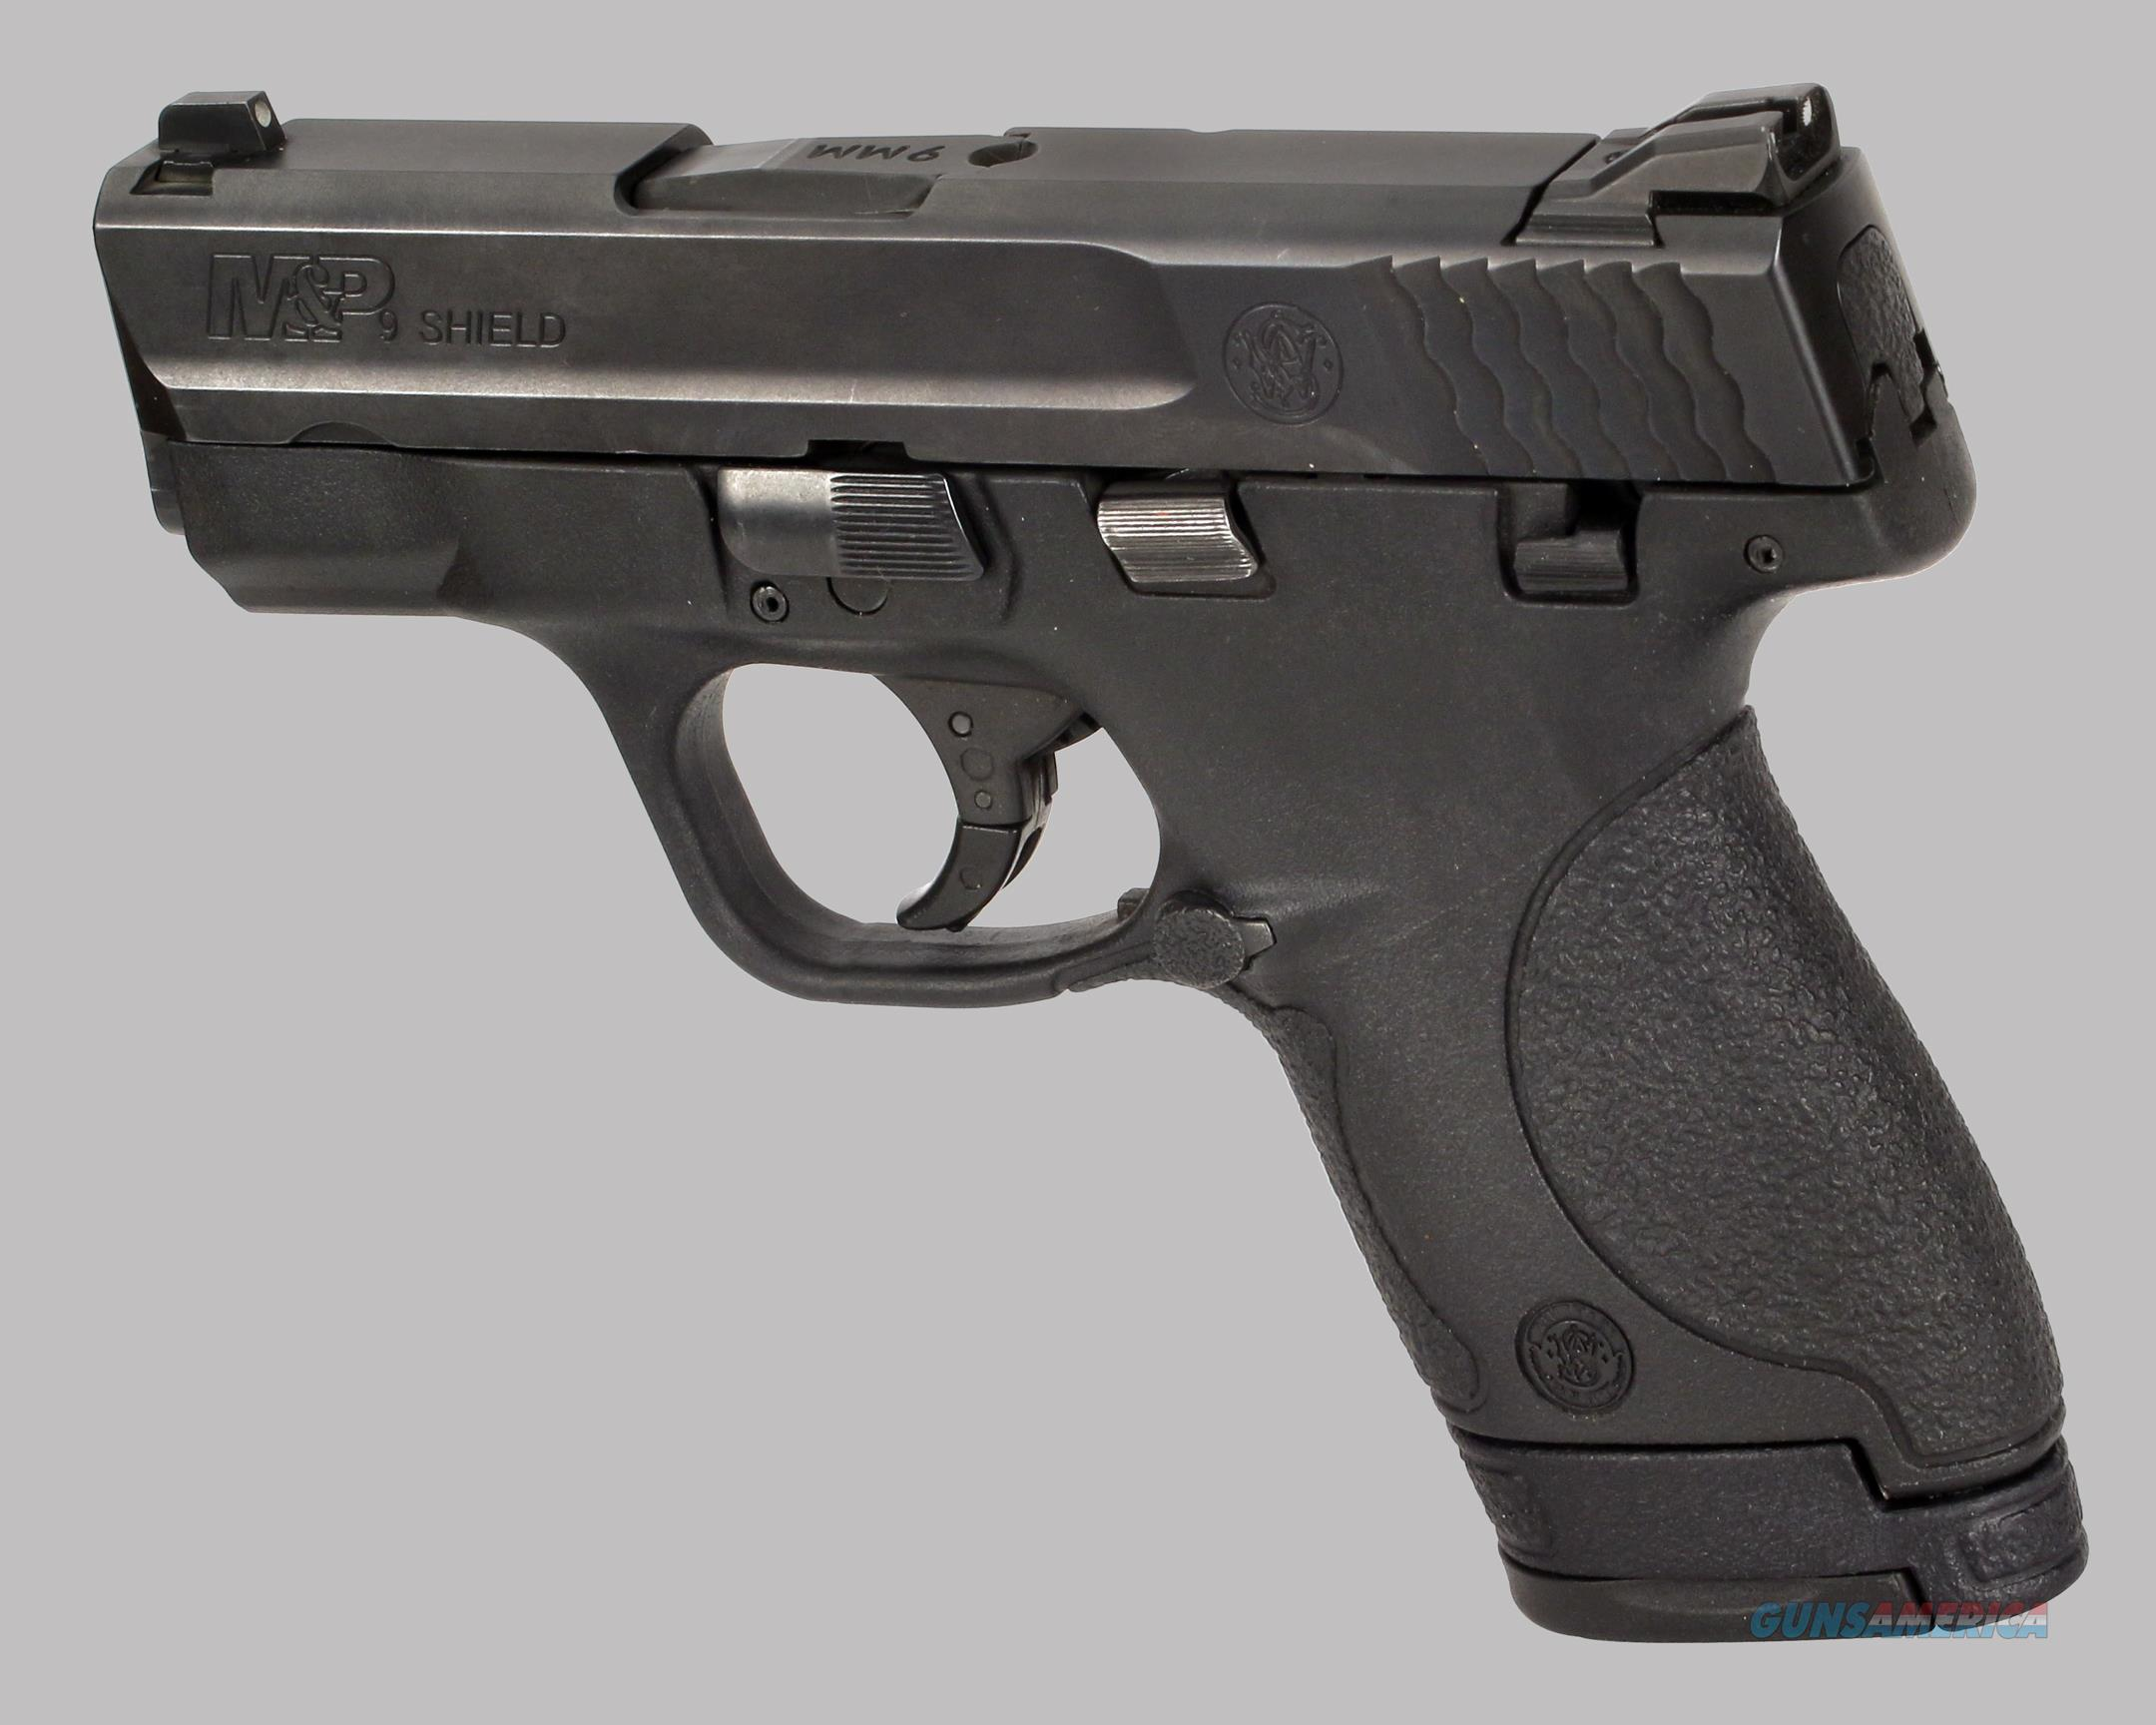 Smith & Wesson M&P9 Shield 9mm Pistol  Guns > Pistols > Smith & Wesson Pistols - Autos > Polymer Frame